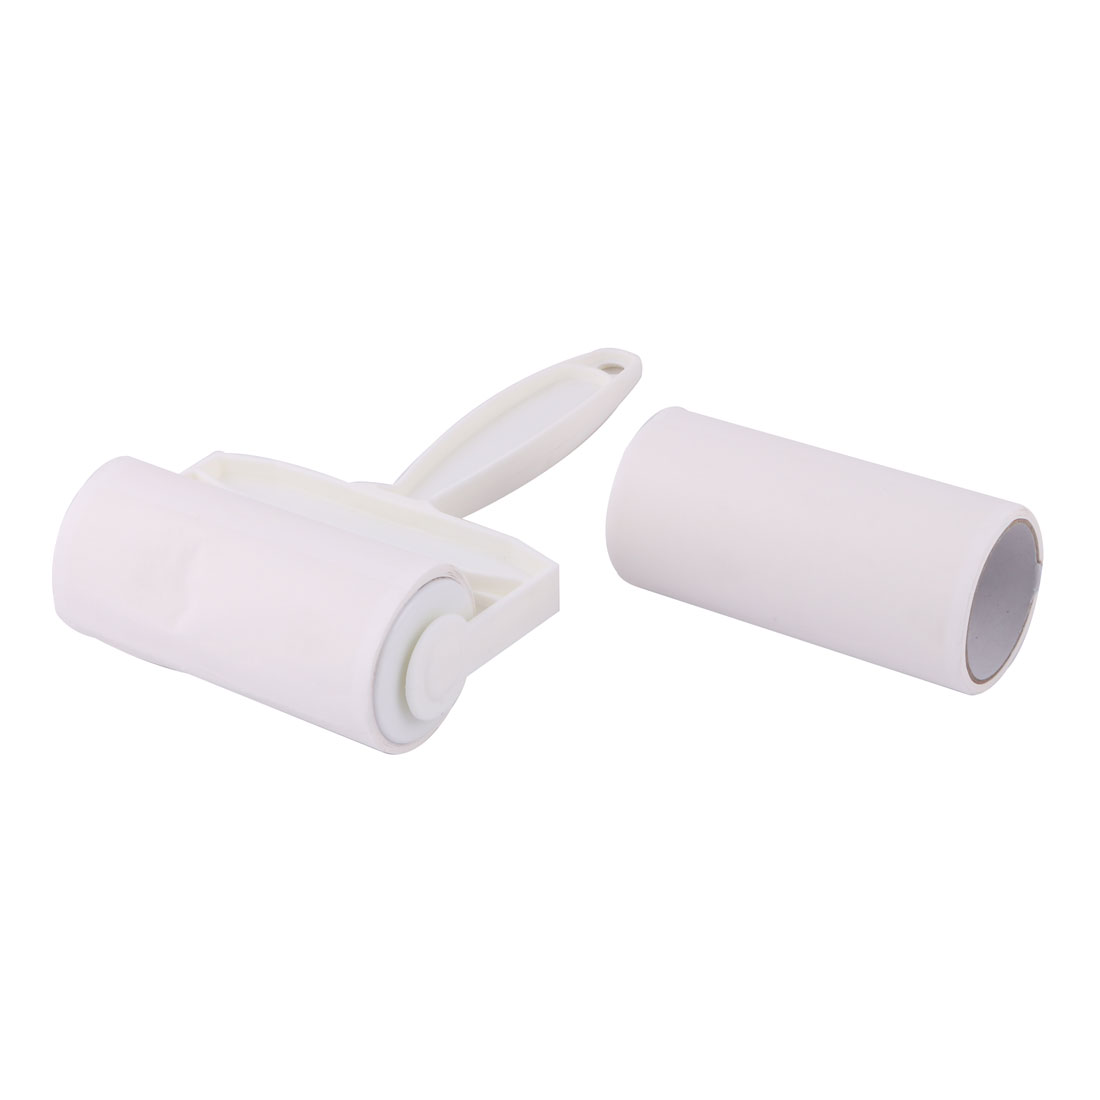 Unique Bargains Manual Clothes Dust Clean Remover Roll Plastic Sticky Roller White